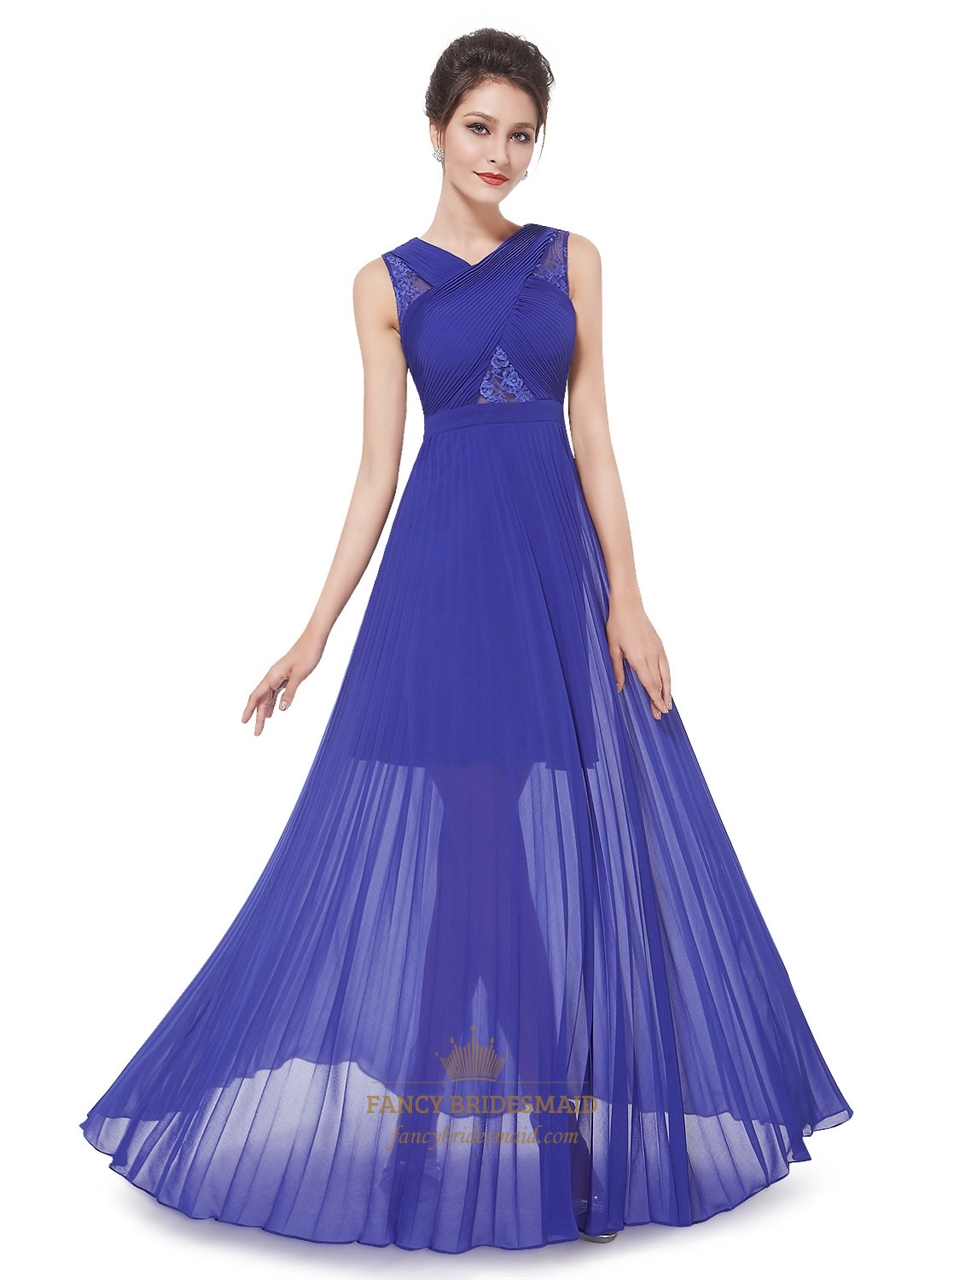 Elegant Royal Blue Bridesmaid Dresses